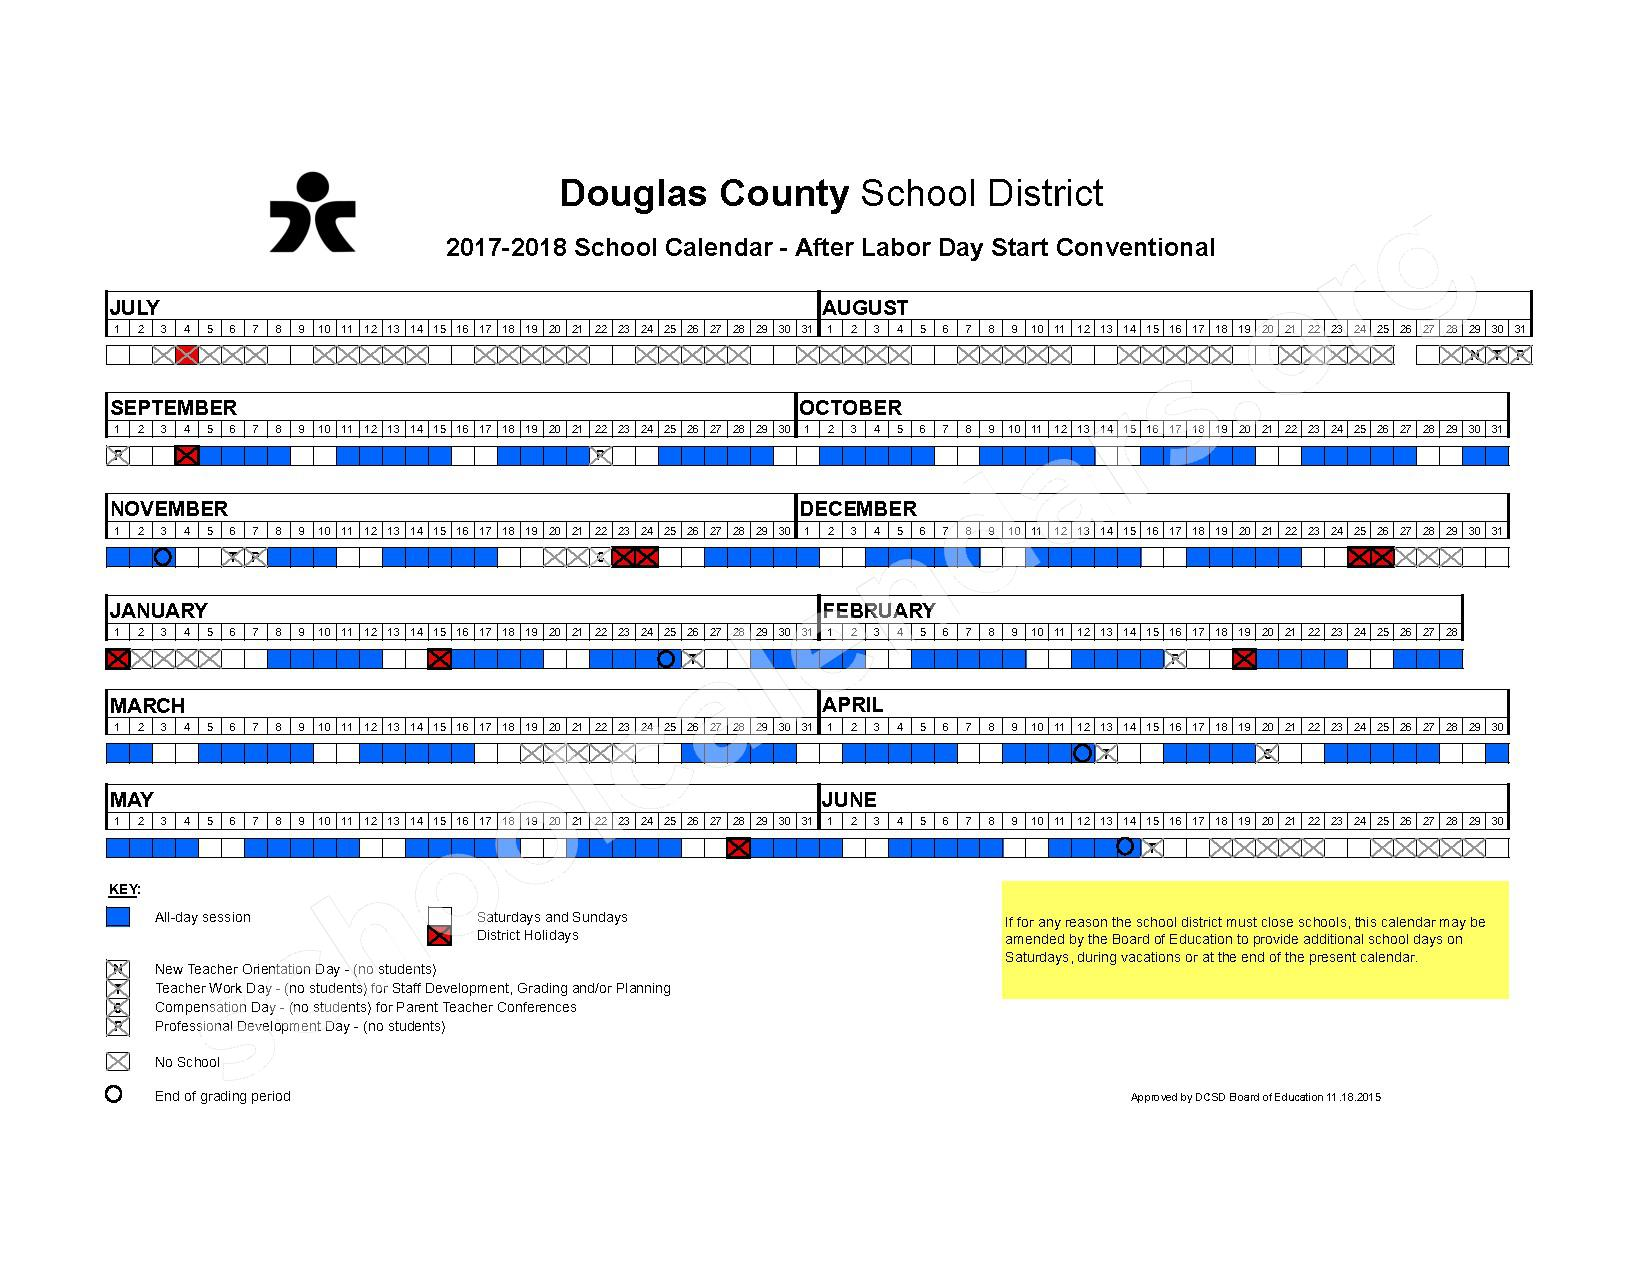 2017 - 2018 Conventional After Labor Day Start Calendar – Douglas County School District – page 1